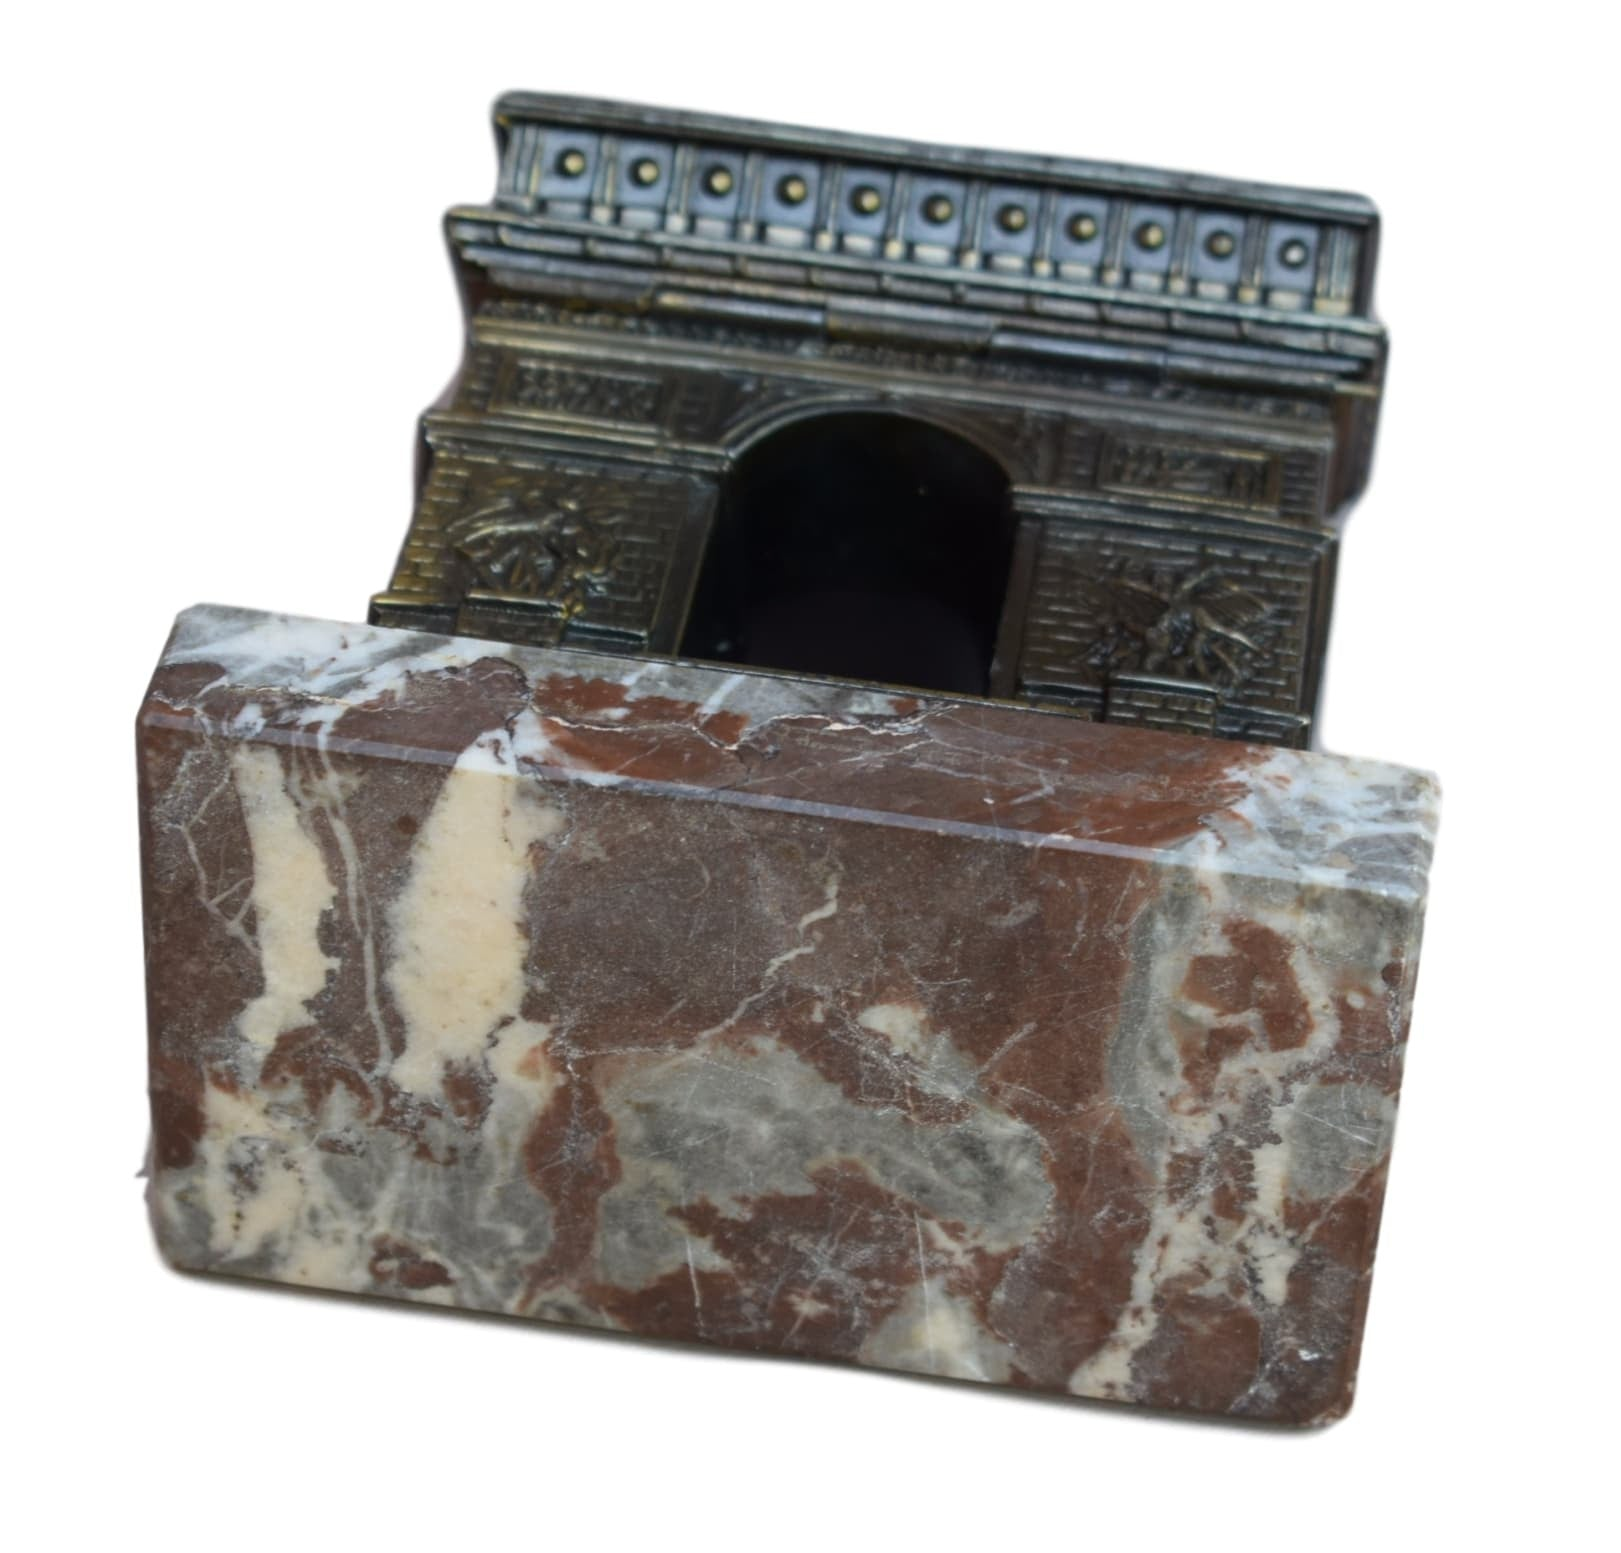 Arch of Triumph Paris Hinged Box - Charmantiques